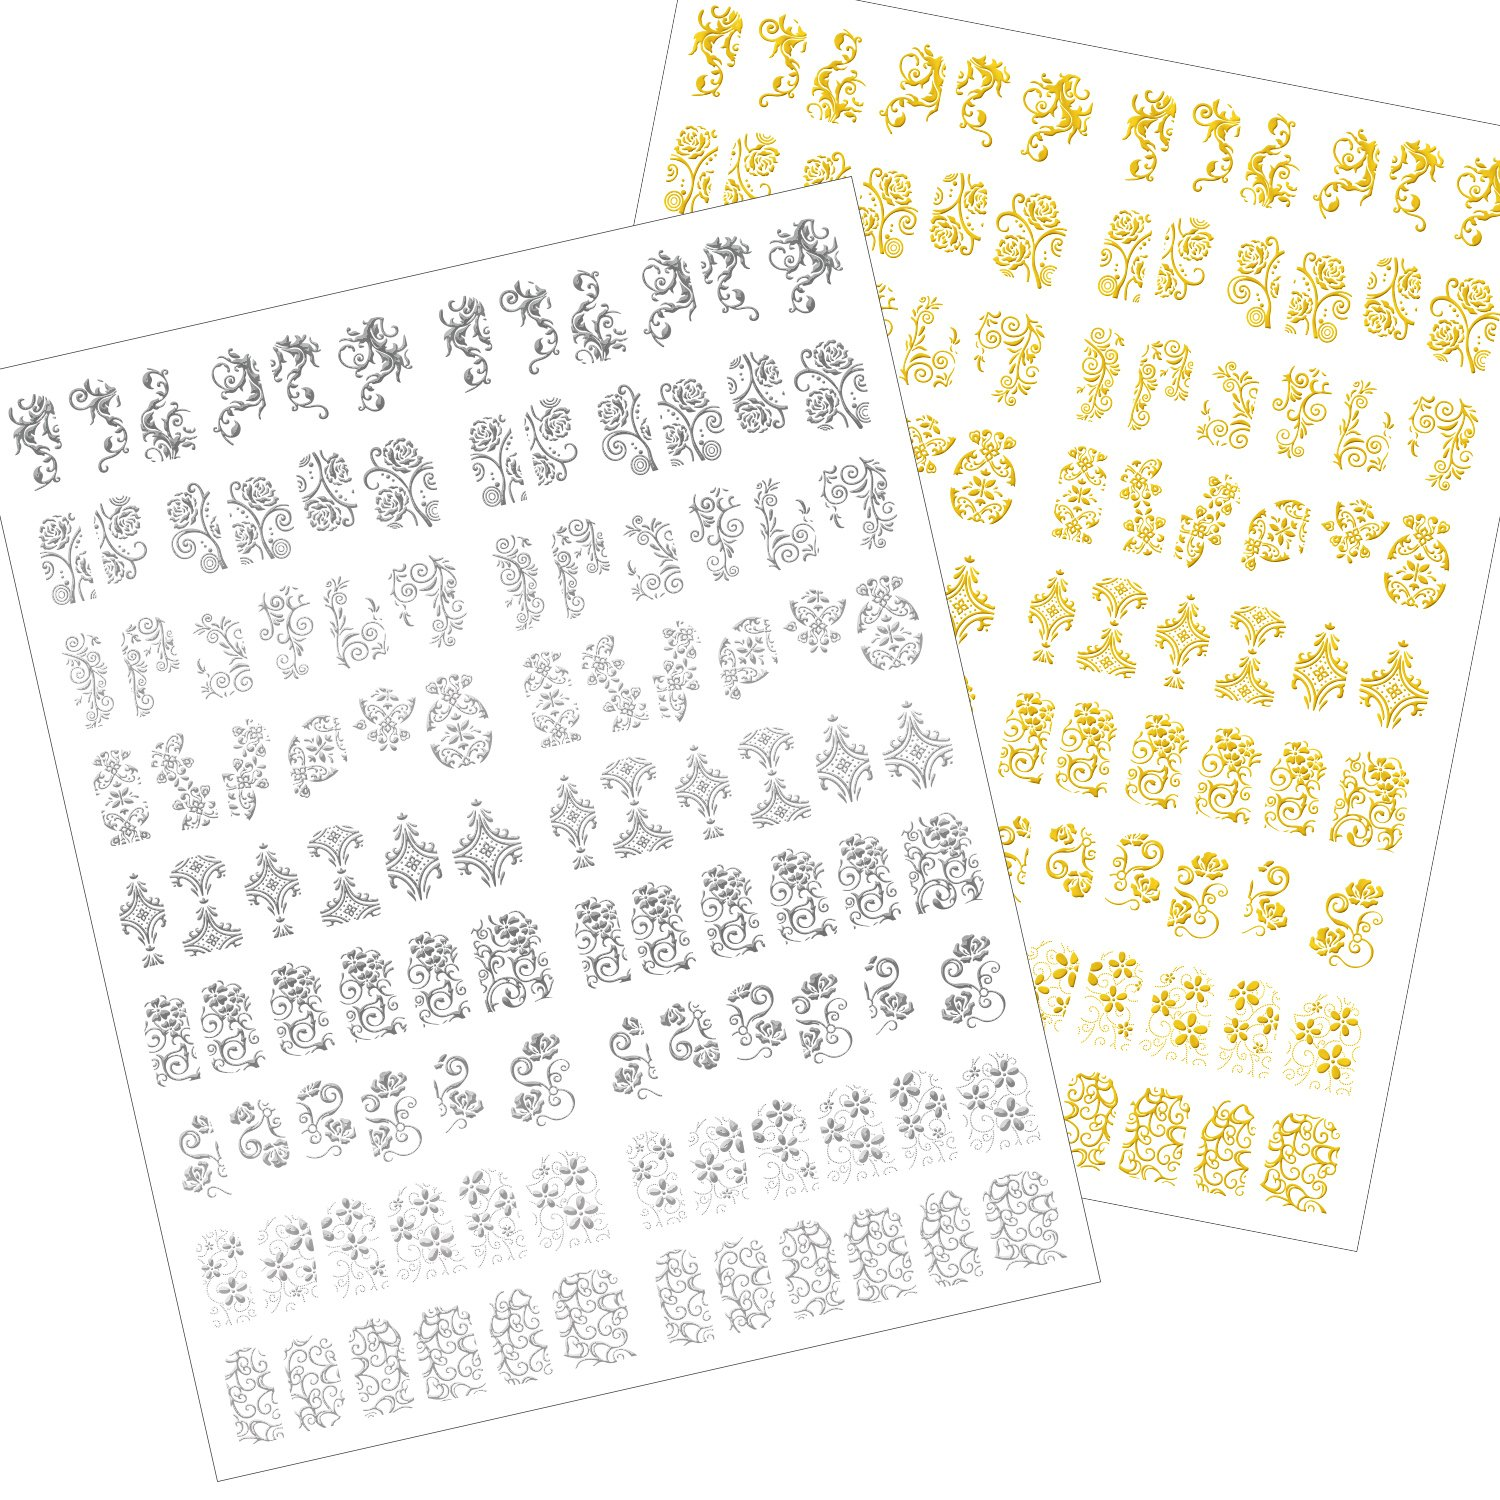 216 Pieces 3D Flower Nail Art Stickers Decals Self-adhesive Nail Tips Decorations, 2 Sheet (Silver and Gold) Mudder